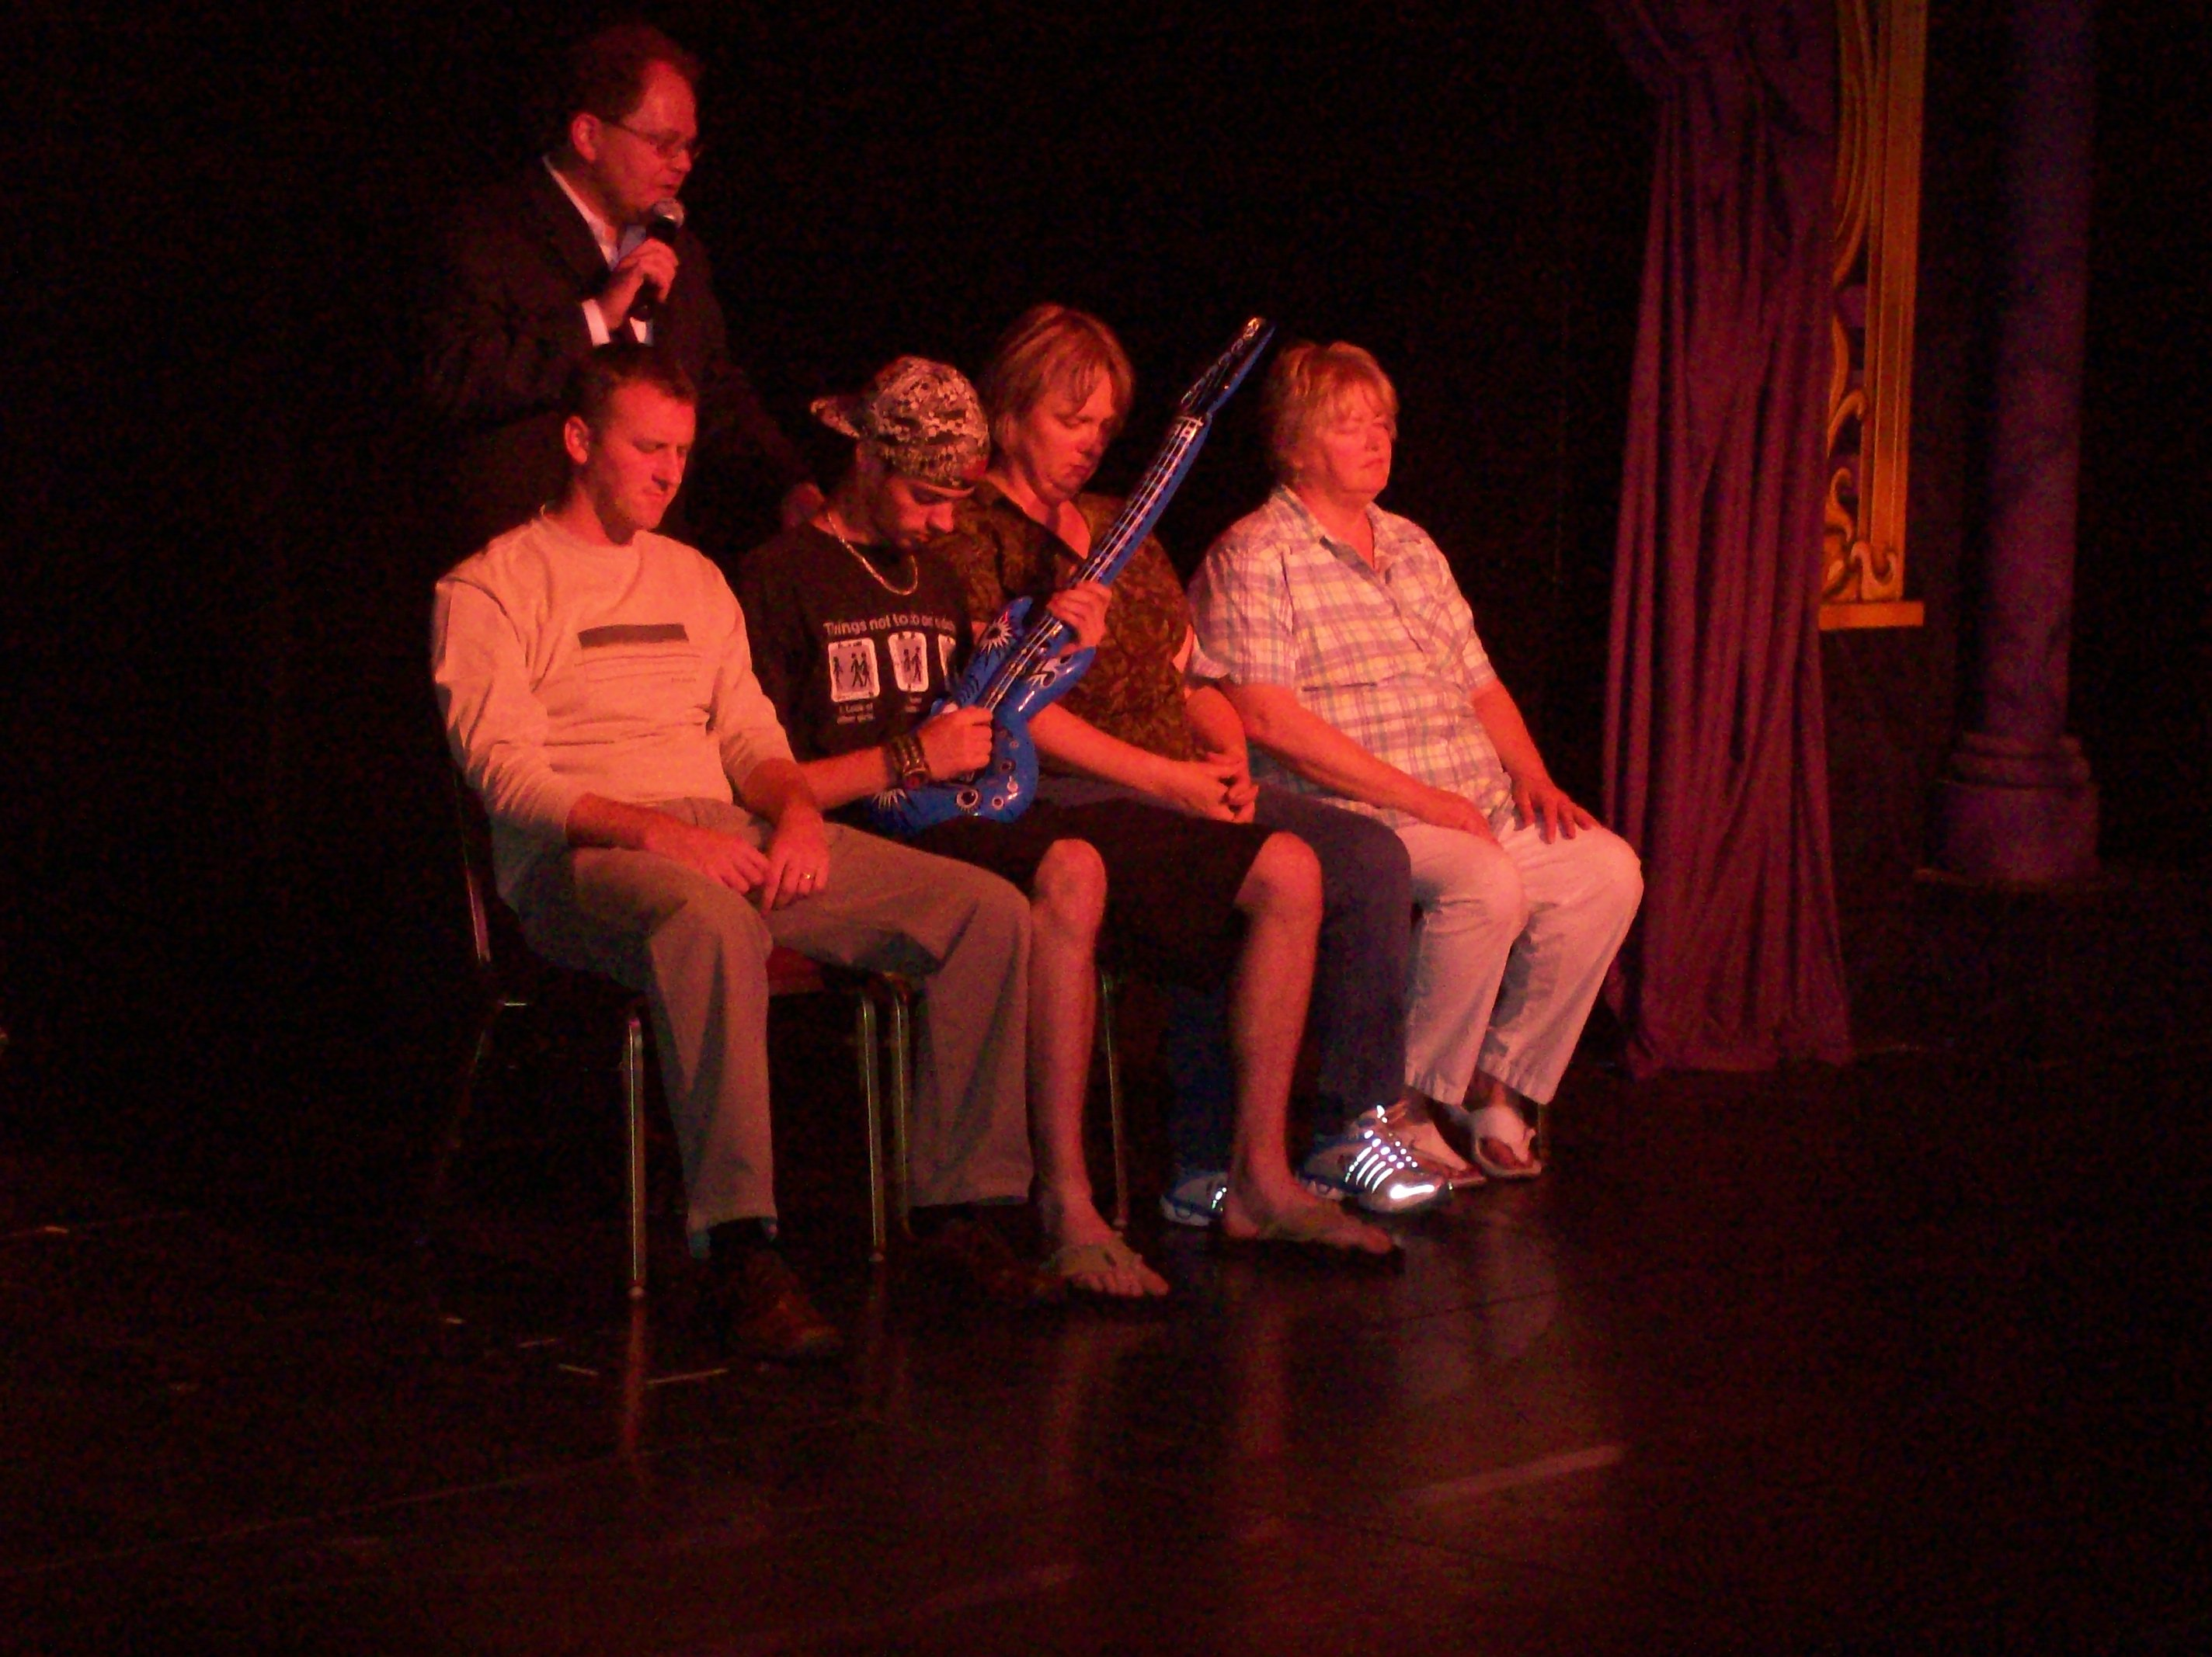 man pluitar in reno show Chris cadys get hypnotized in Reno